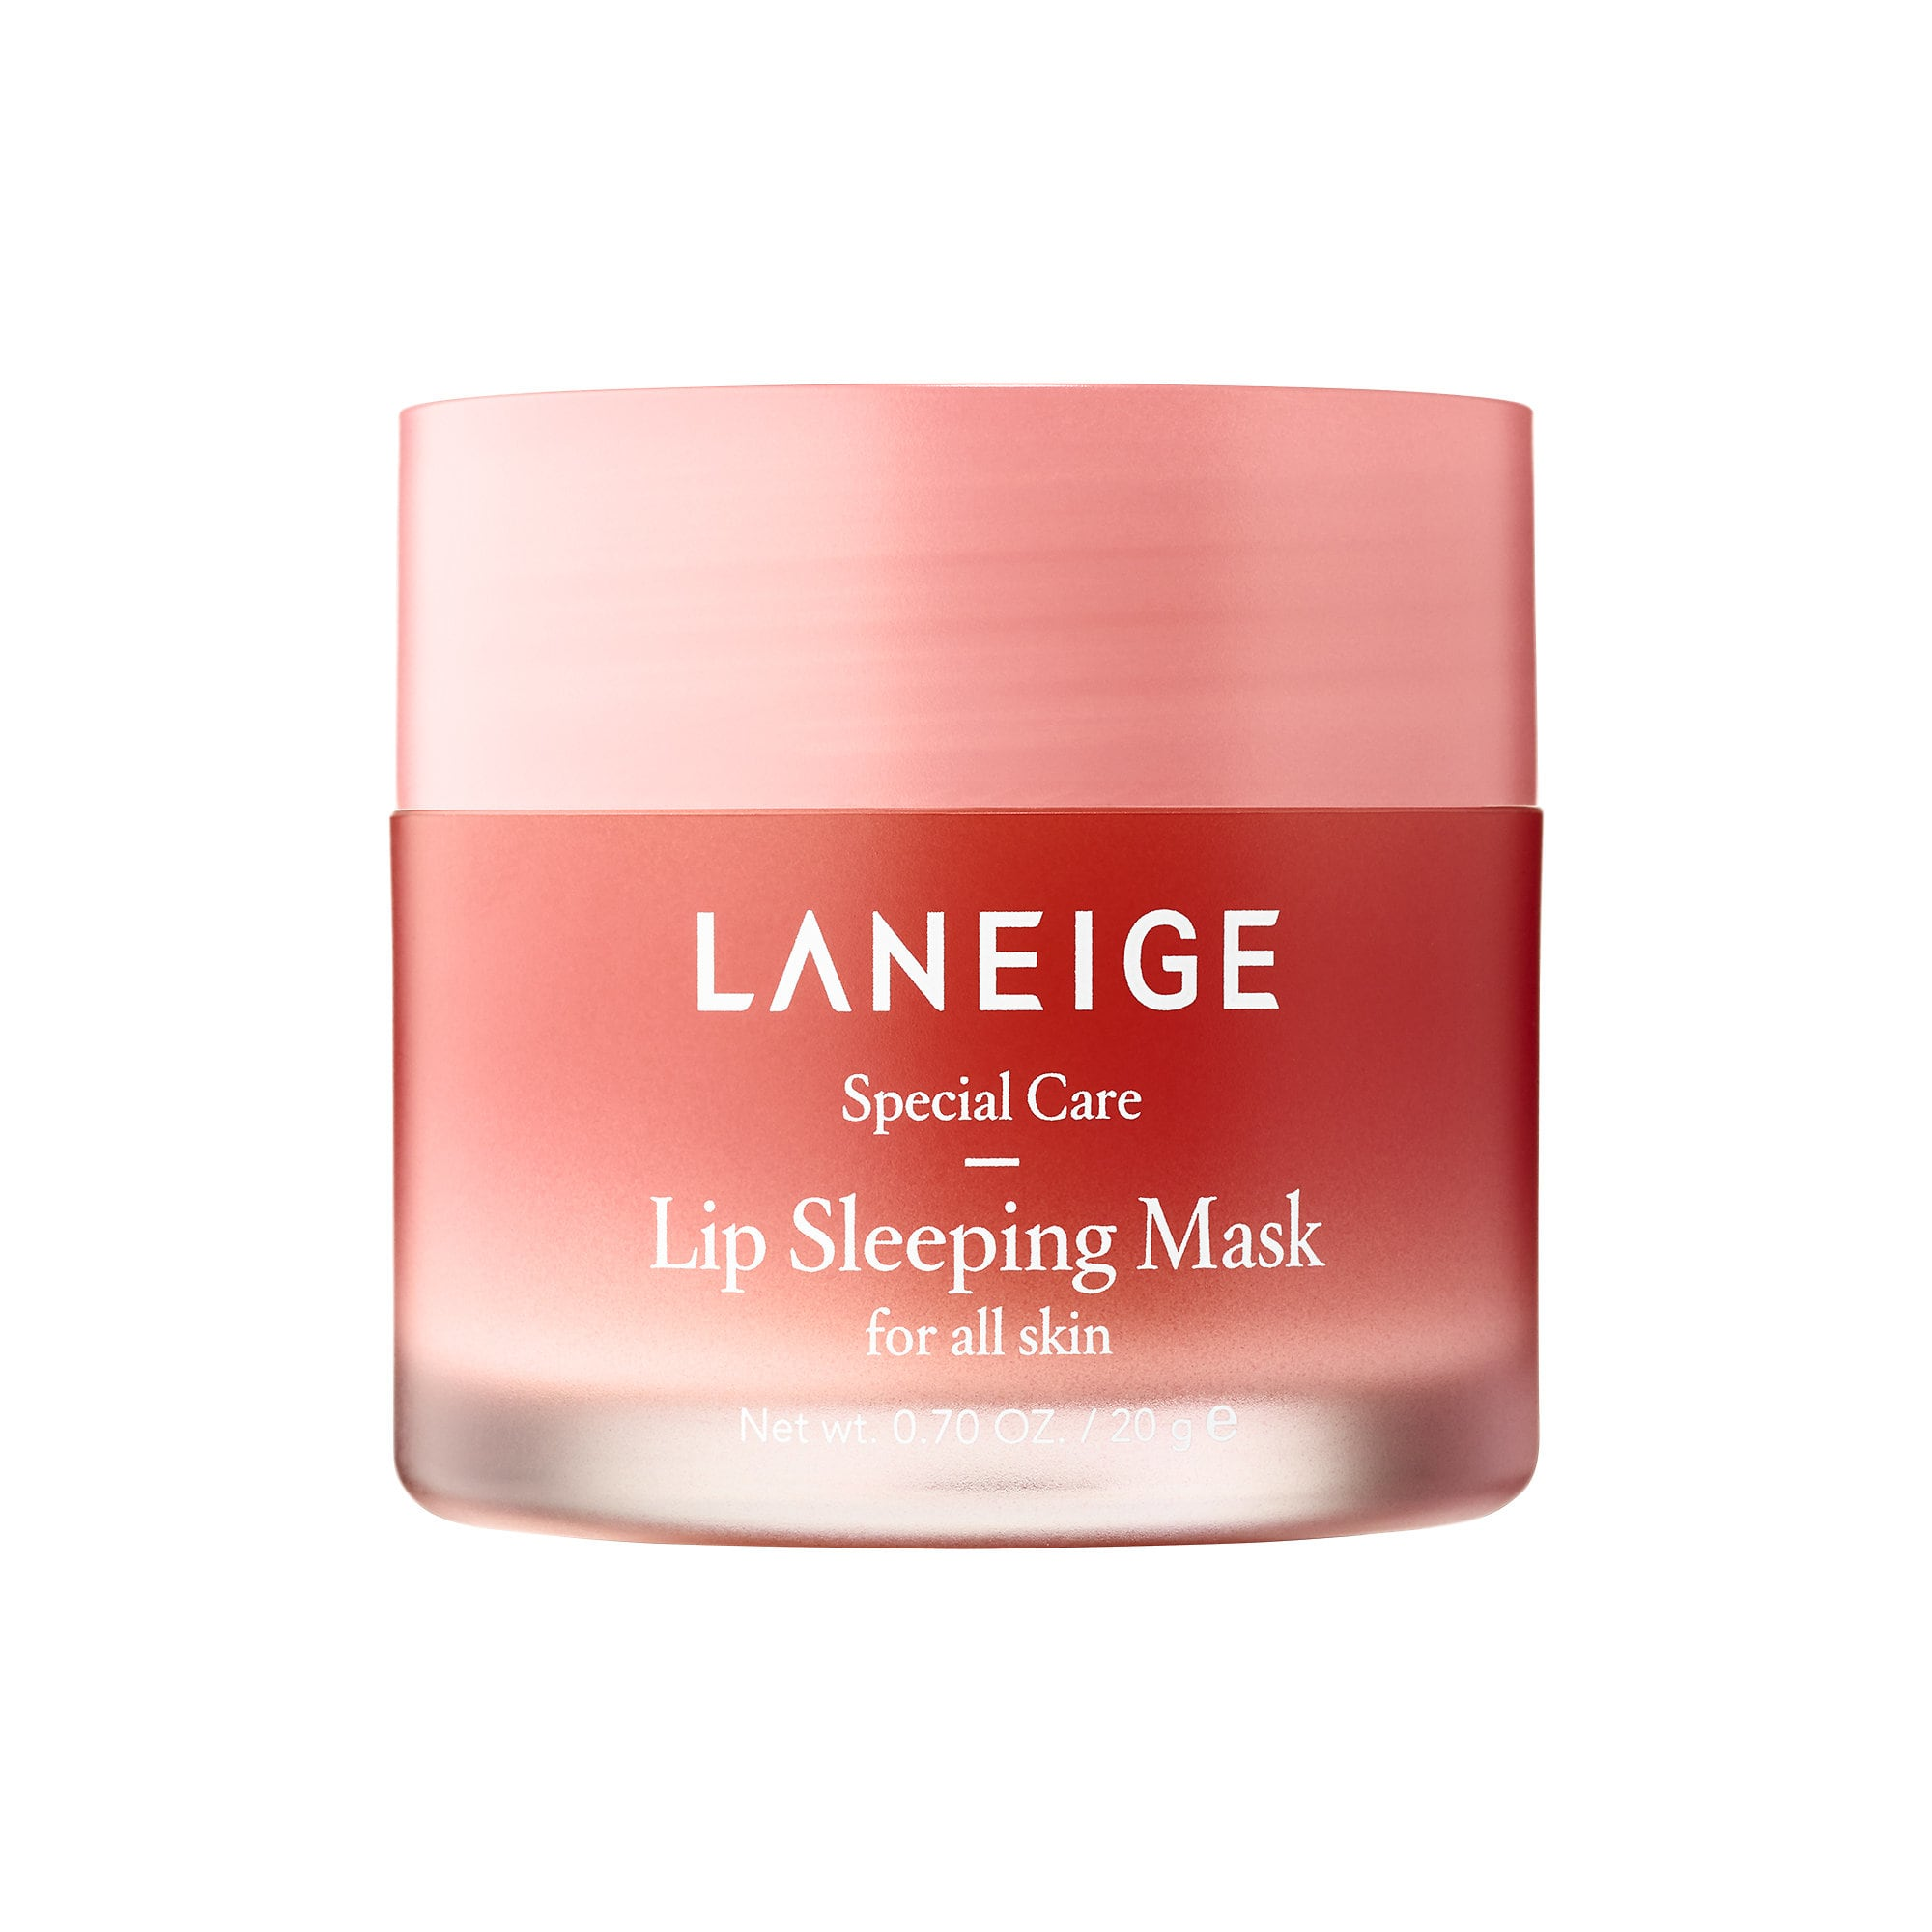 Laneige Lip Sleeping Mask, $20.00